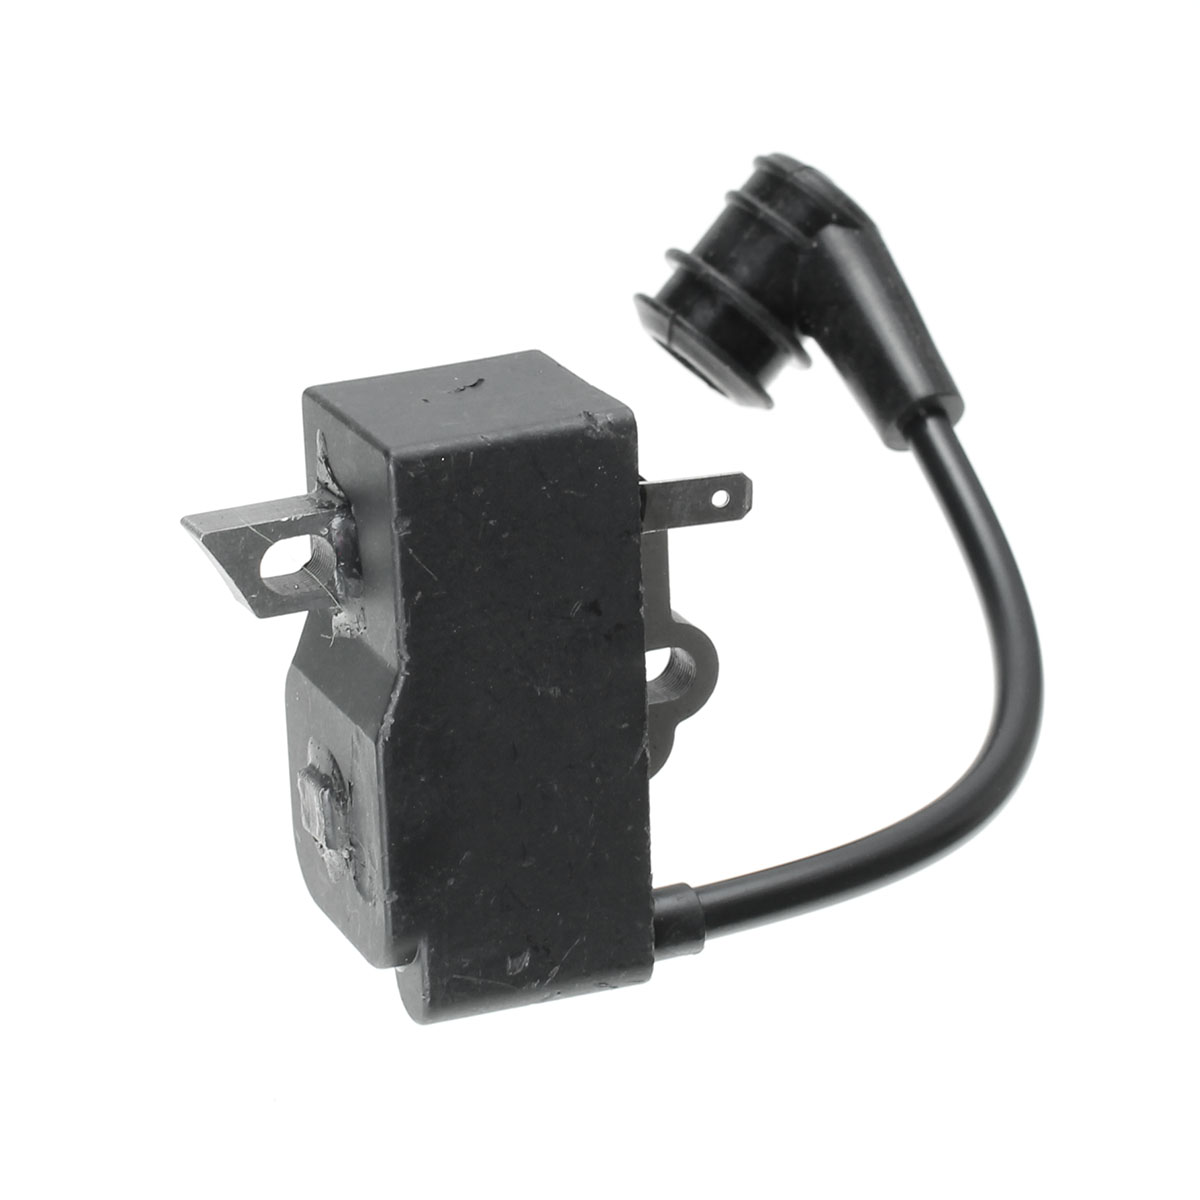 IGNITION COIL MODULE FOR  STIHL MS171 MS181 MS211 CHAINSAW OEM 1139 400 1307